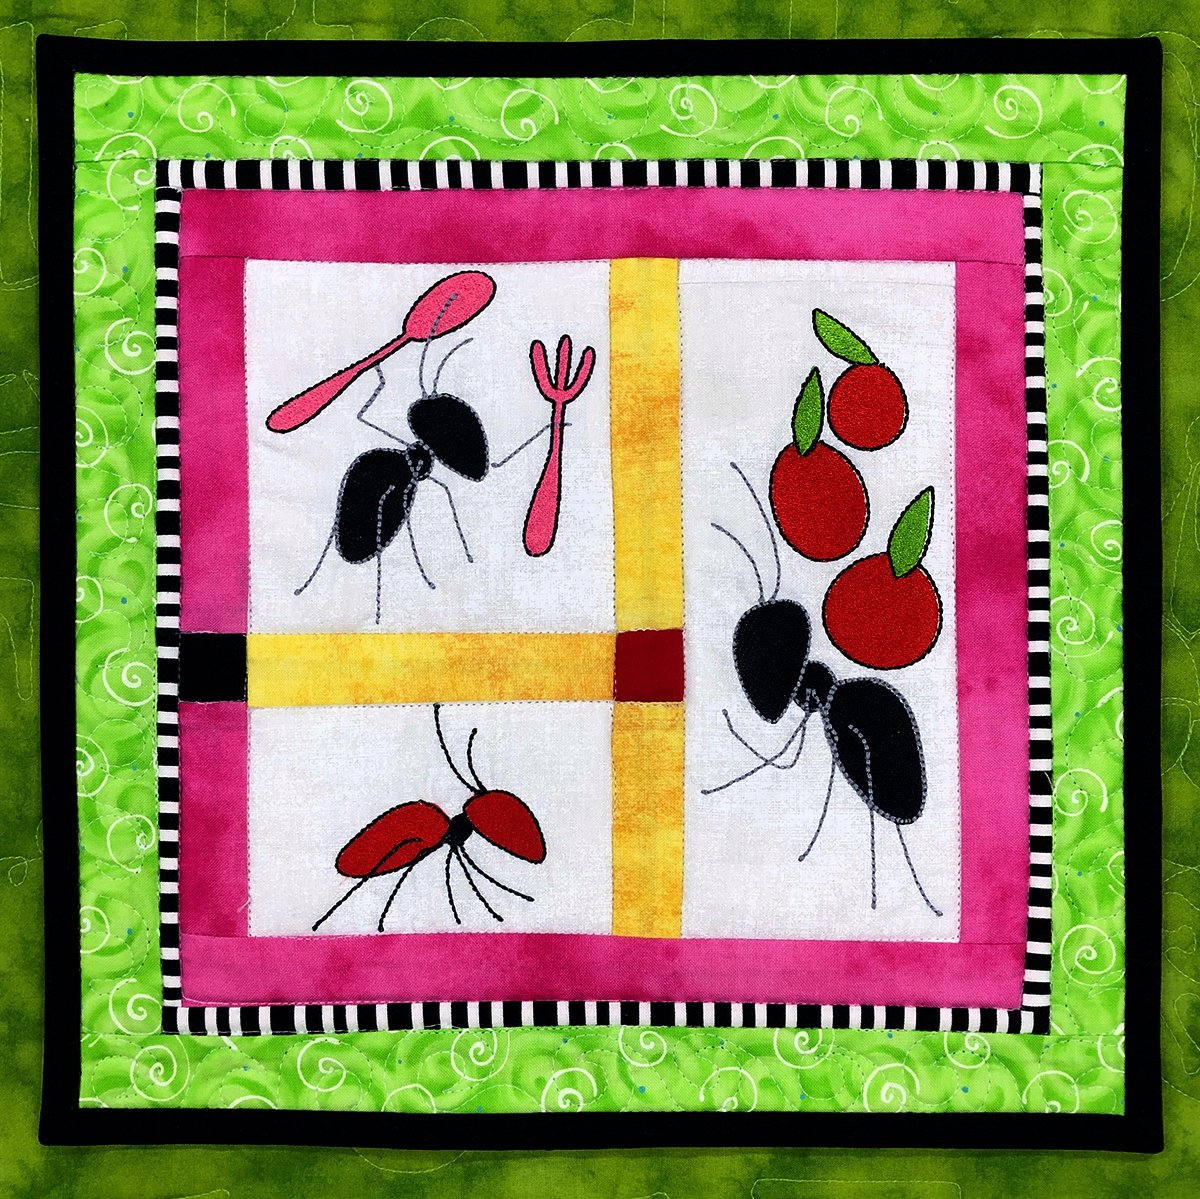 F1007 Picnic Ants Embroidery